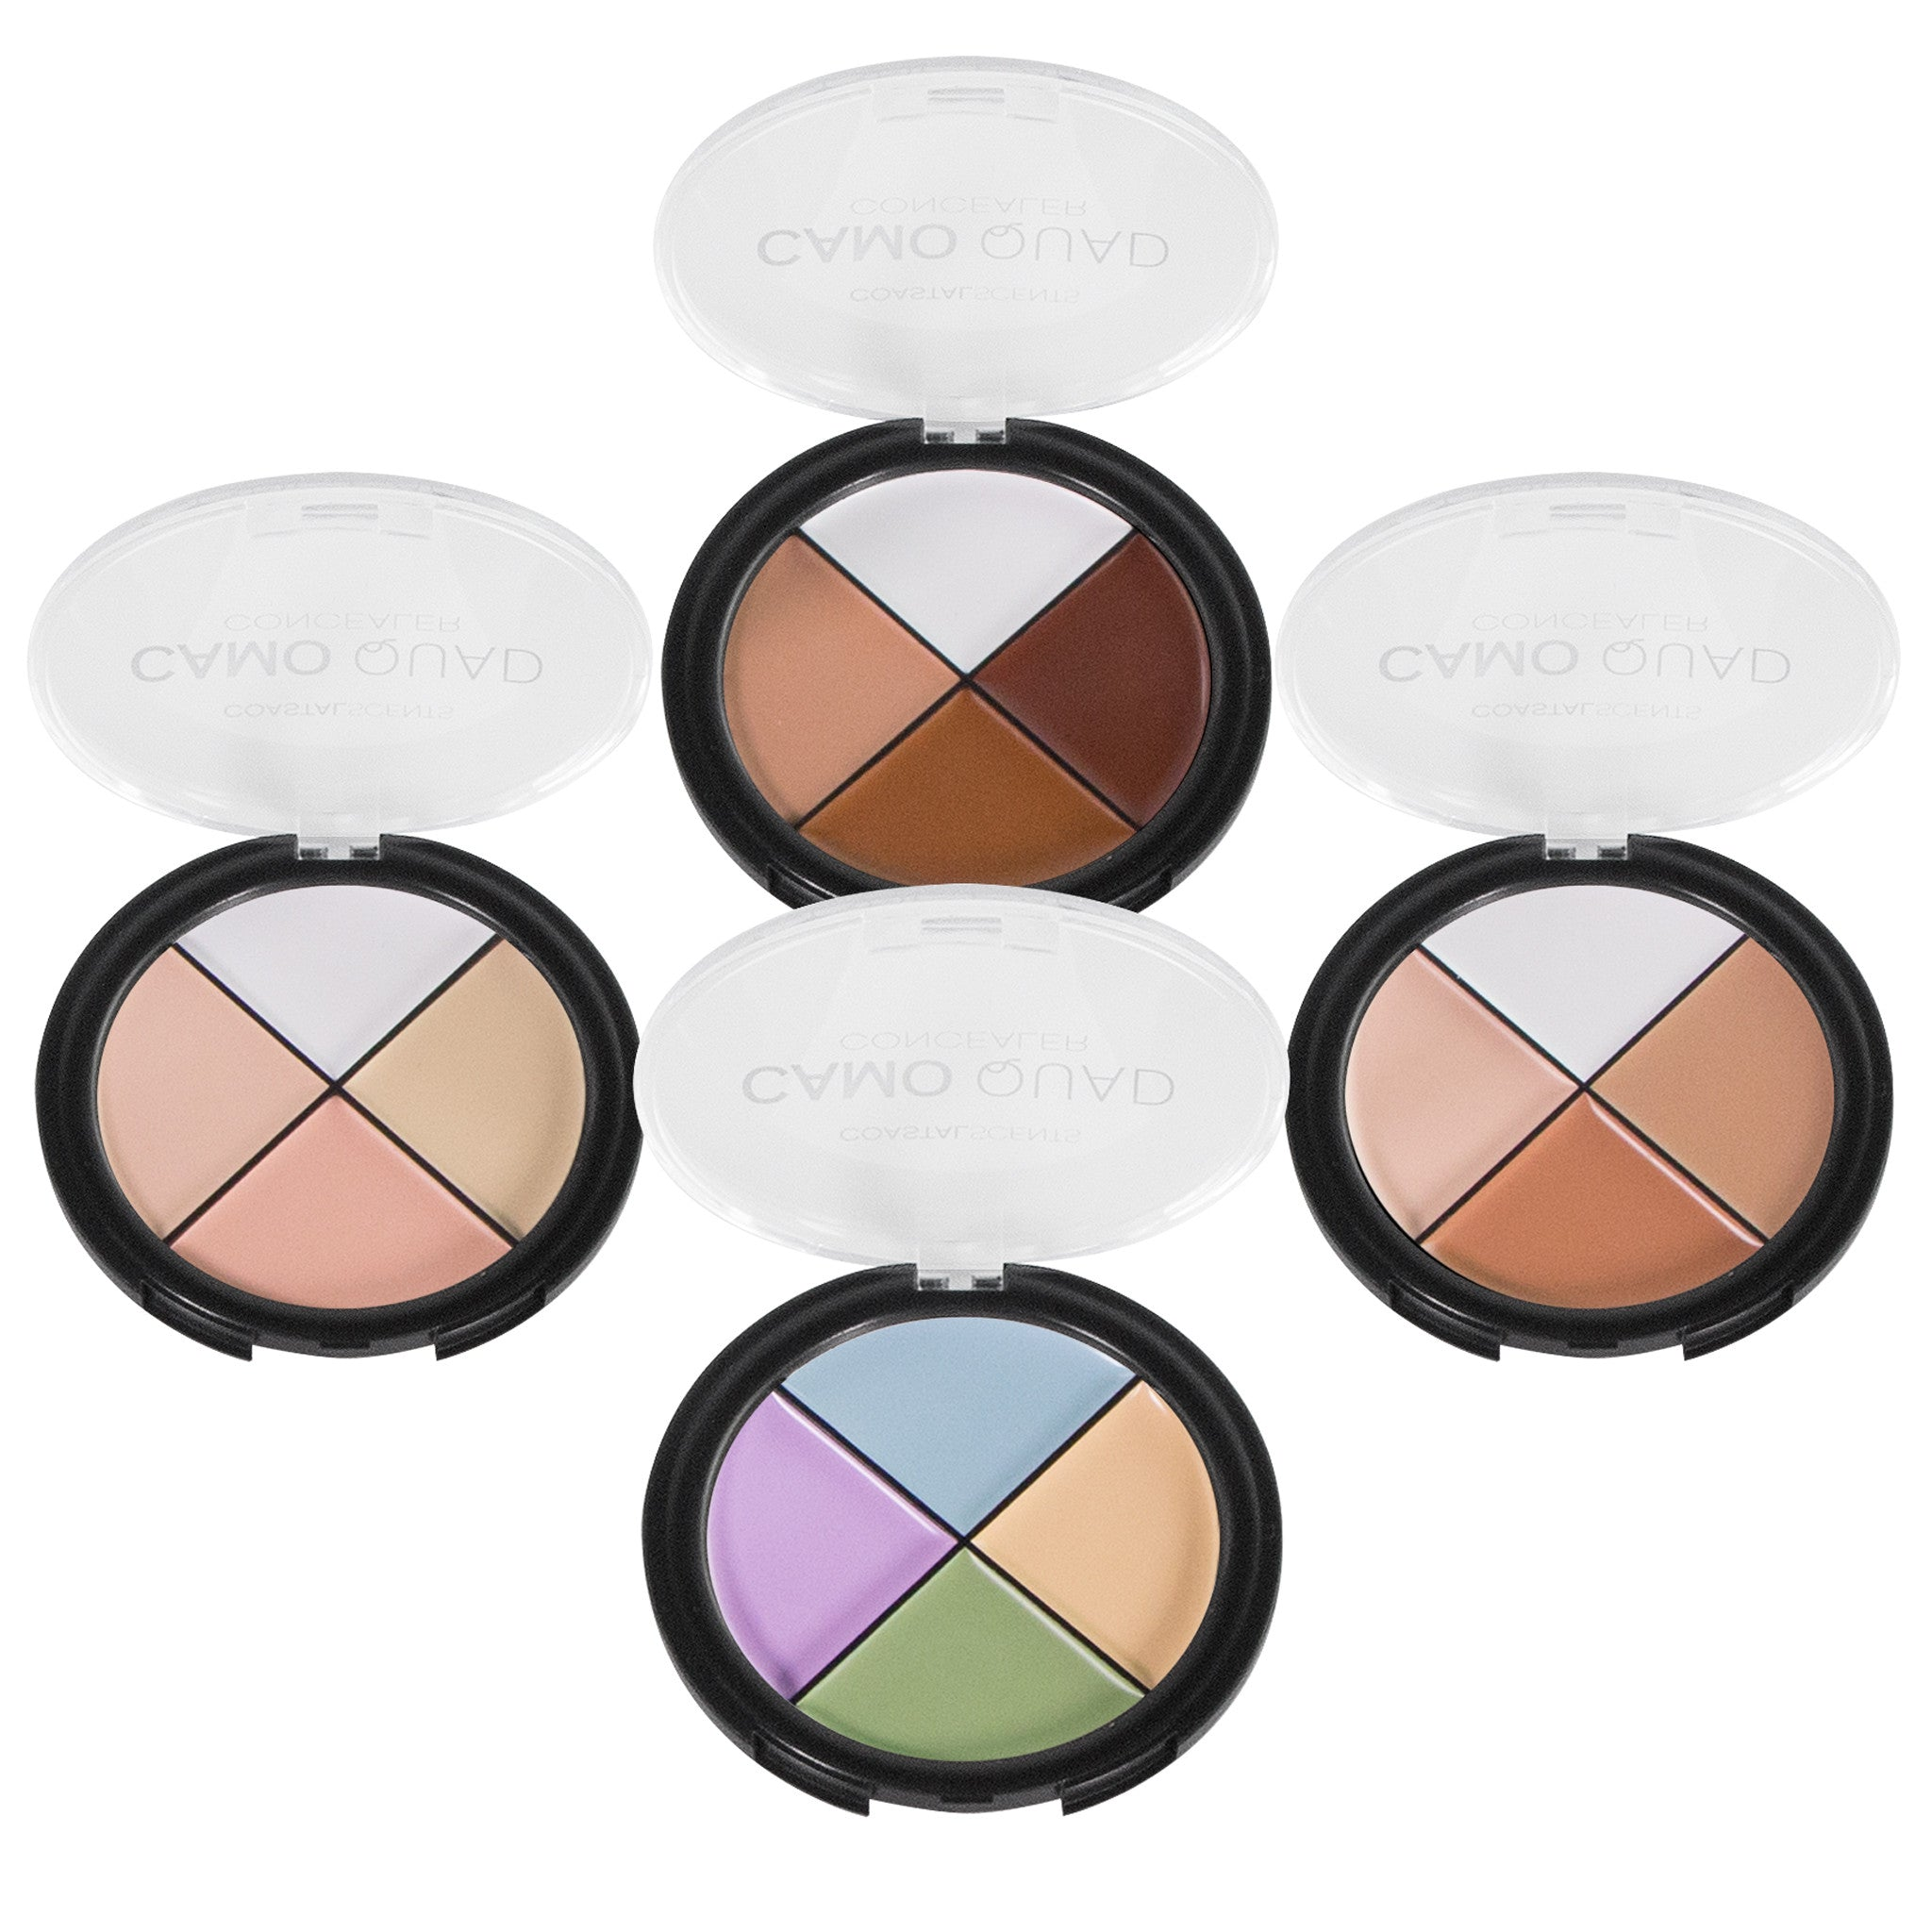 Makeup Concealer - Camo Quad Concealers and Corrector By Coastal Scents